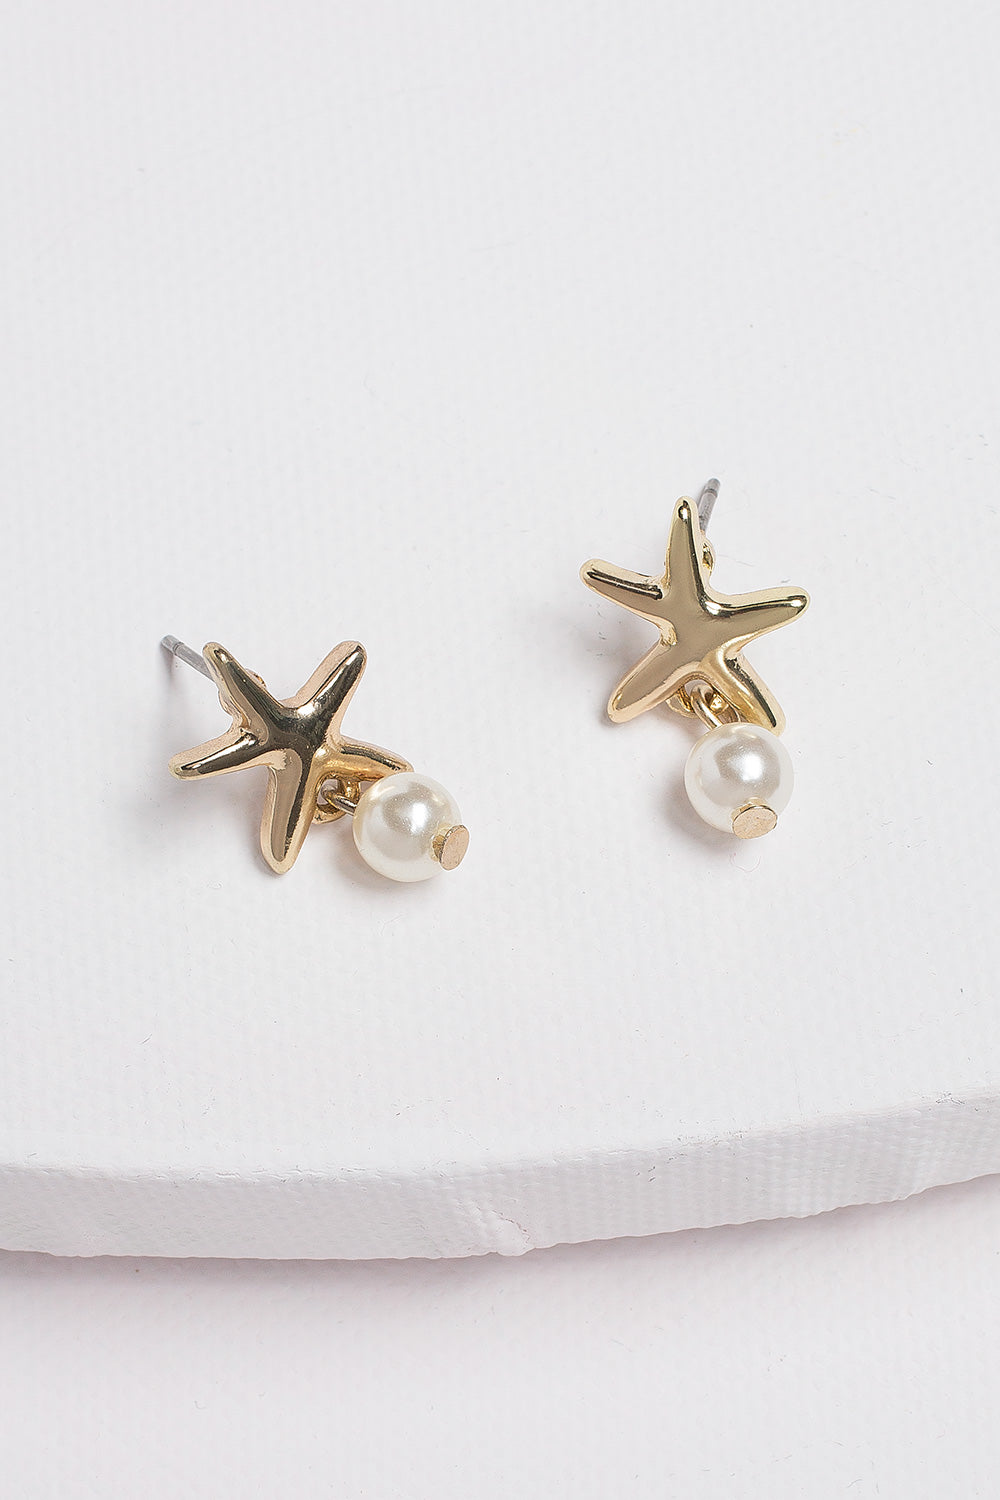 Type 1 A Pearl and a Starfish Went out to Play... Earrings